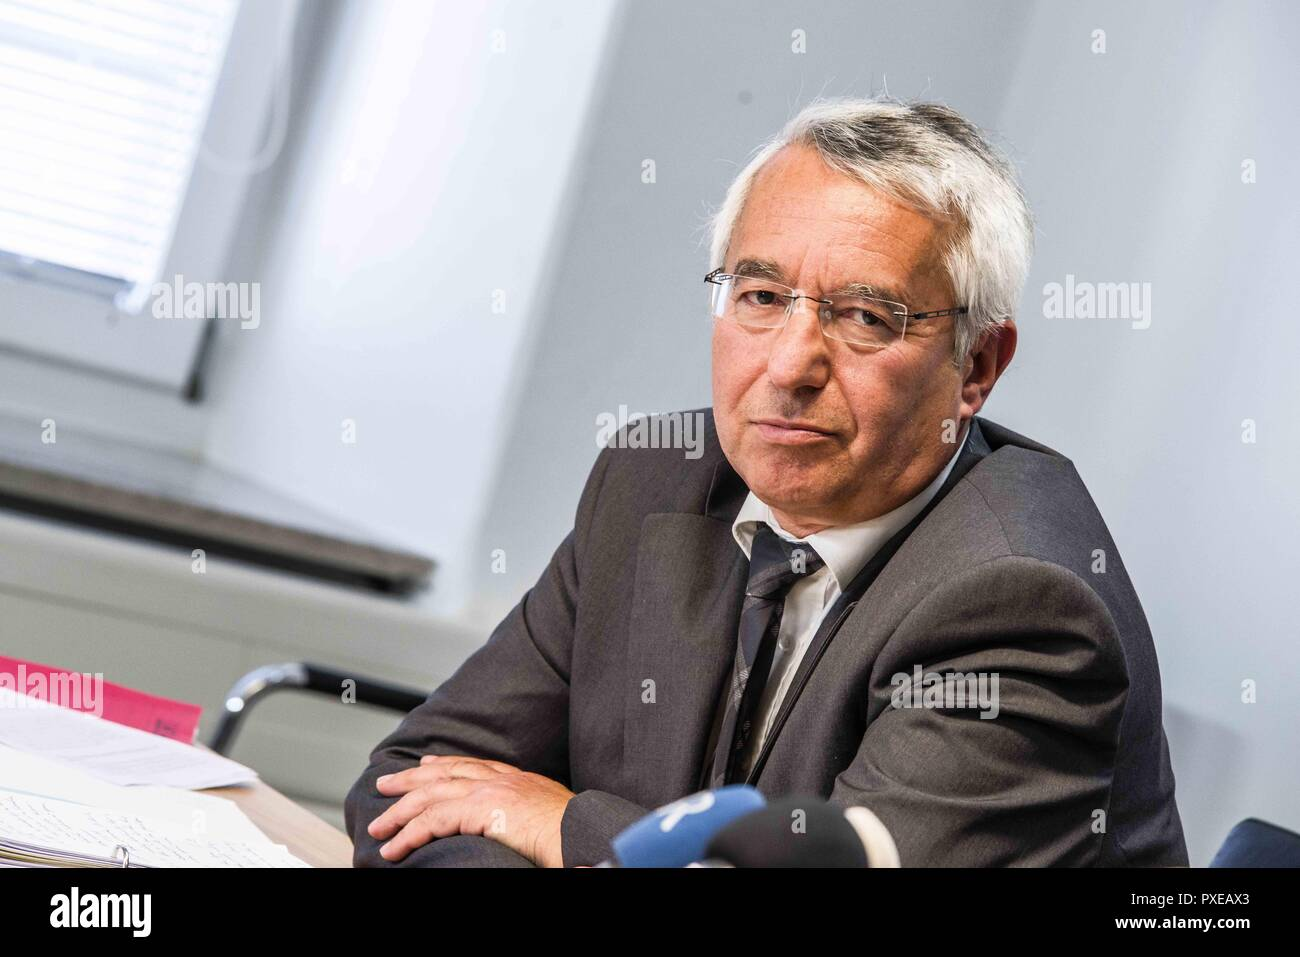 Munich, Bavaria, Germany. 22nd Oct, 2018. WILHELM SCHMIDBAUER president of the Bavarian Police. In response to a wave of publications that declare the border checks between Austria and Germany as unconstitutional, Bavarian Interior Minister JOACHIM HERRMANN called an emergency meeting with Bavarian police president WILHELM SCHMIDBAUER to dispute the claims of unconstitutionality and ineffectiveness of the work carried out by the Grenzpolizei (border police). The Grenzpolizei is composed of Bavarian police tasked with this additional role, despite border control being a federal task. Cri - Stock Image